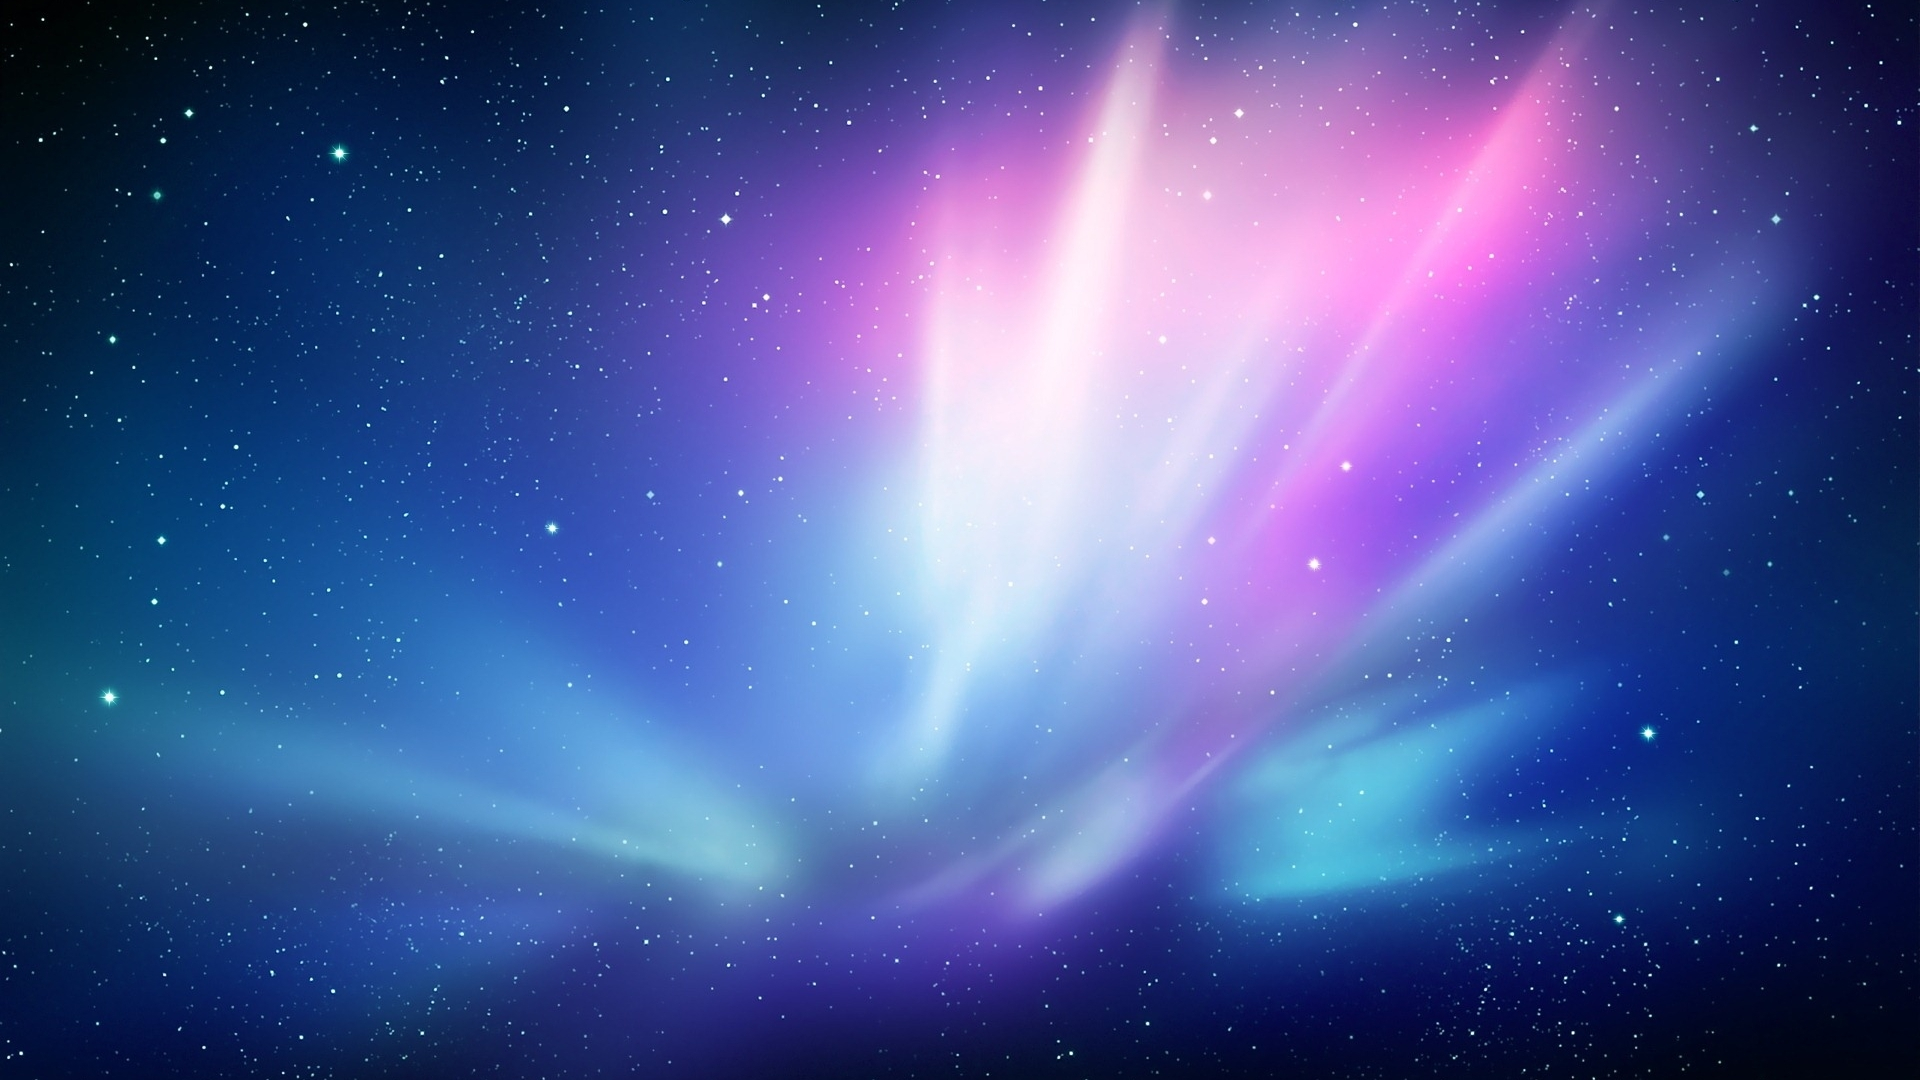 Purple and Blue Galaxy Wallpaper 1920x1080